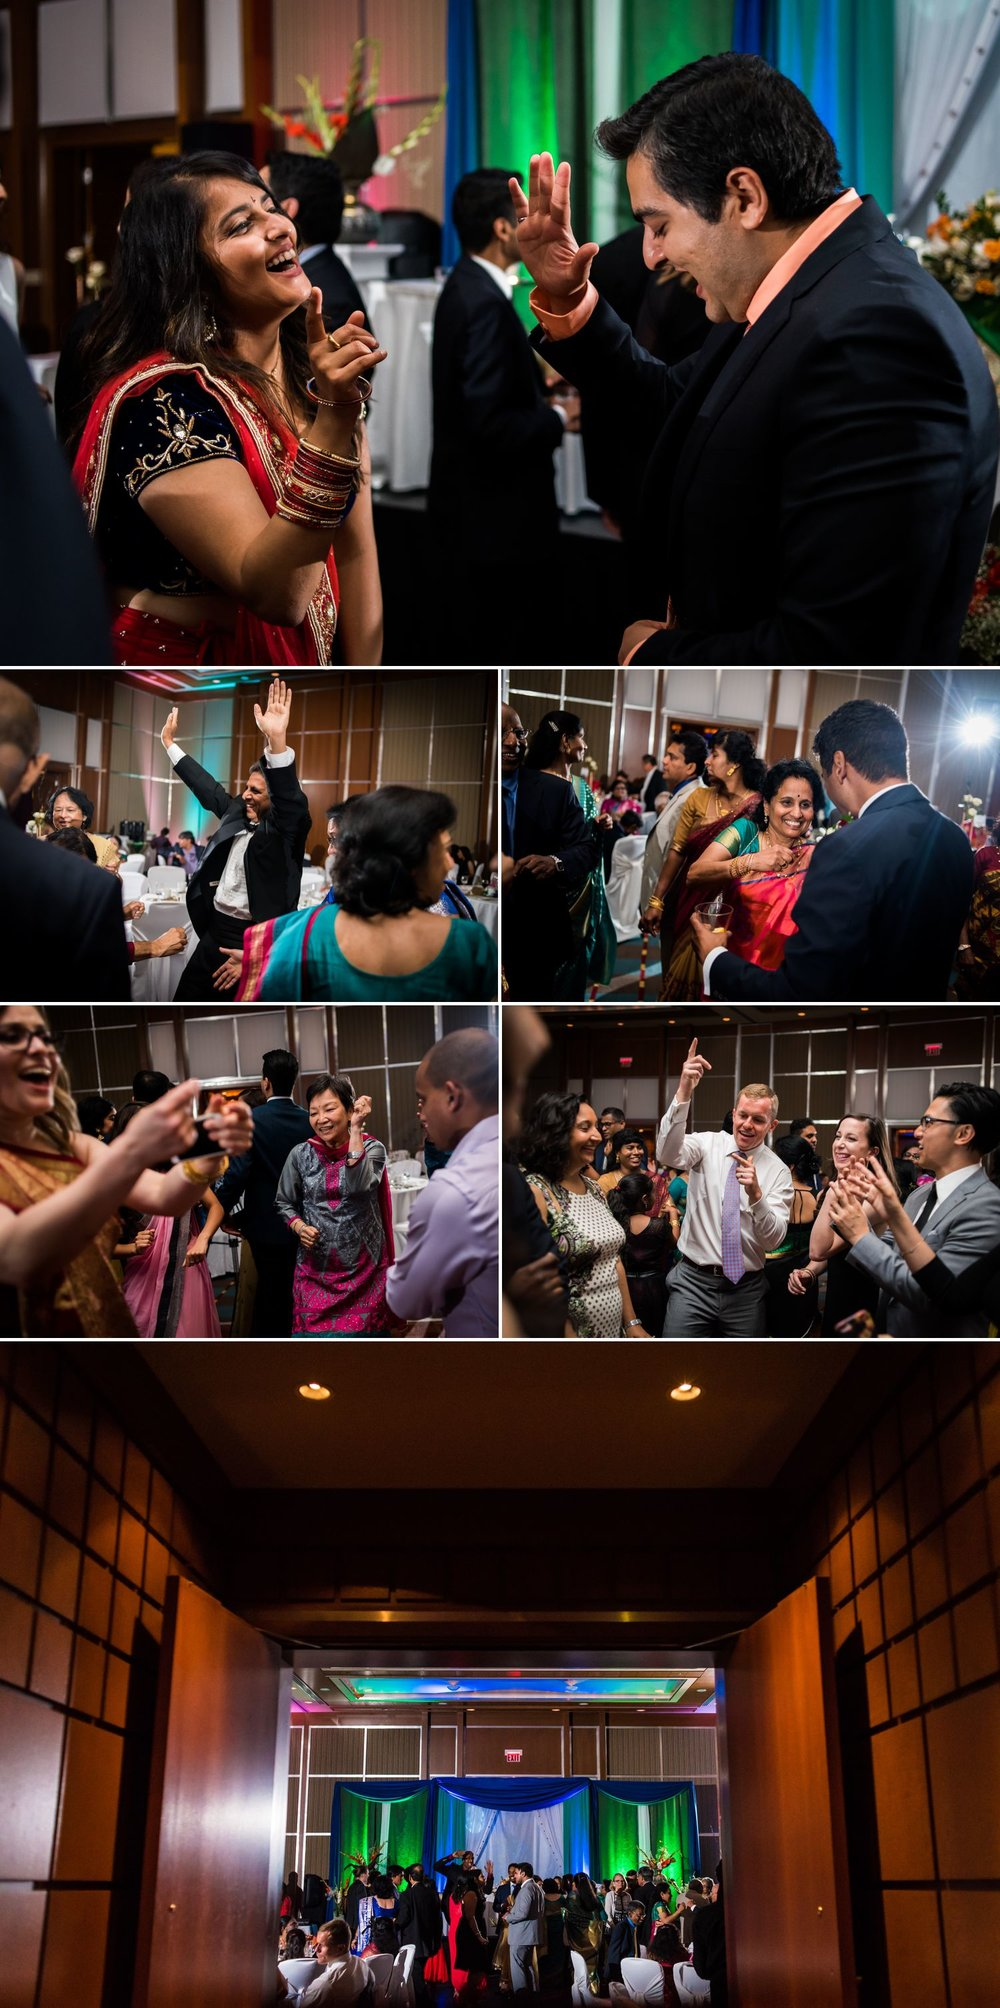 The bride and groom dancing with their guests during the wedding reception at the Brookstreet Hotel & Resort